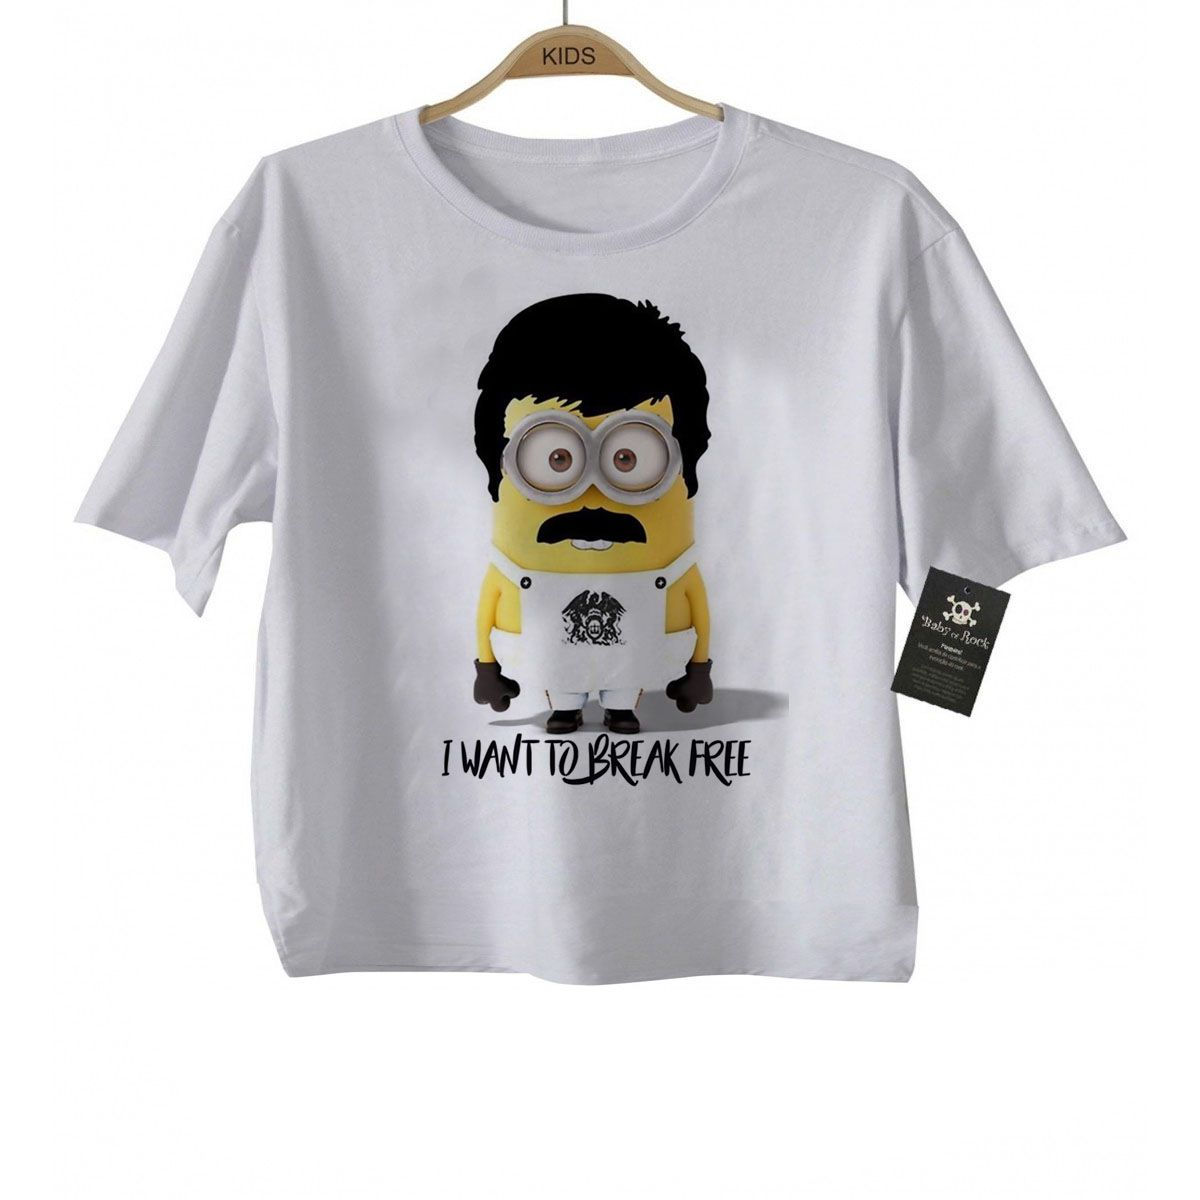 Camiseta Infantil Minions Freddy Mercury Queen  - Caricato - White  - Baby Monster - Body Bebe